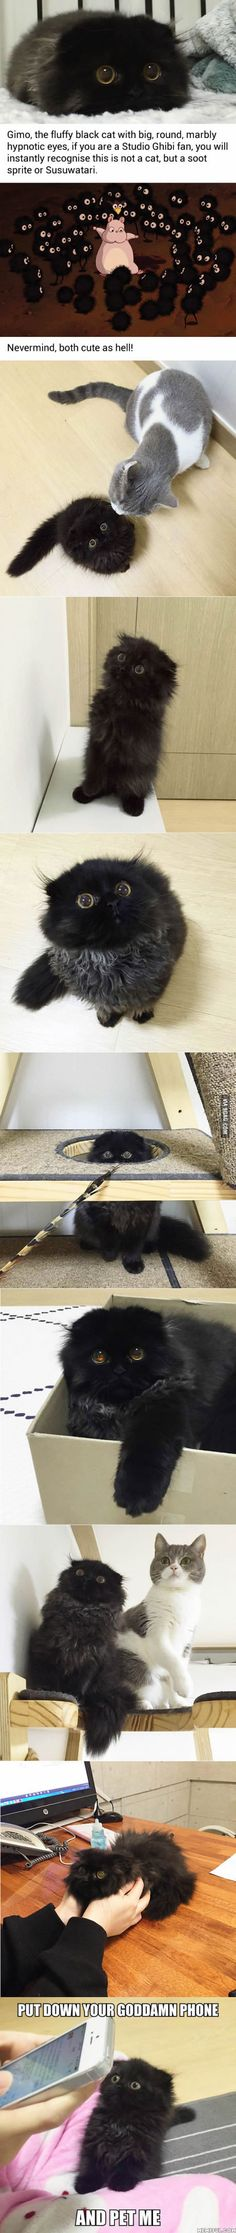 This Giant-Eyed Cat Looks Like Studio Ghibli's Soot Sprite WHAT THE...THAT'S WHAT I SAID!